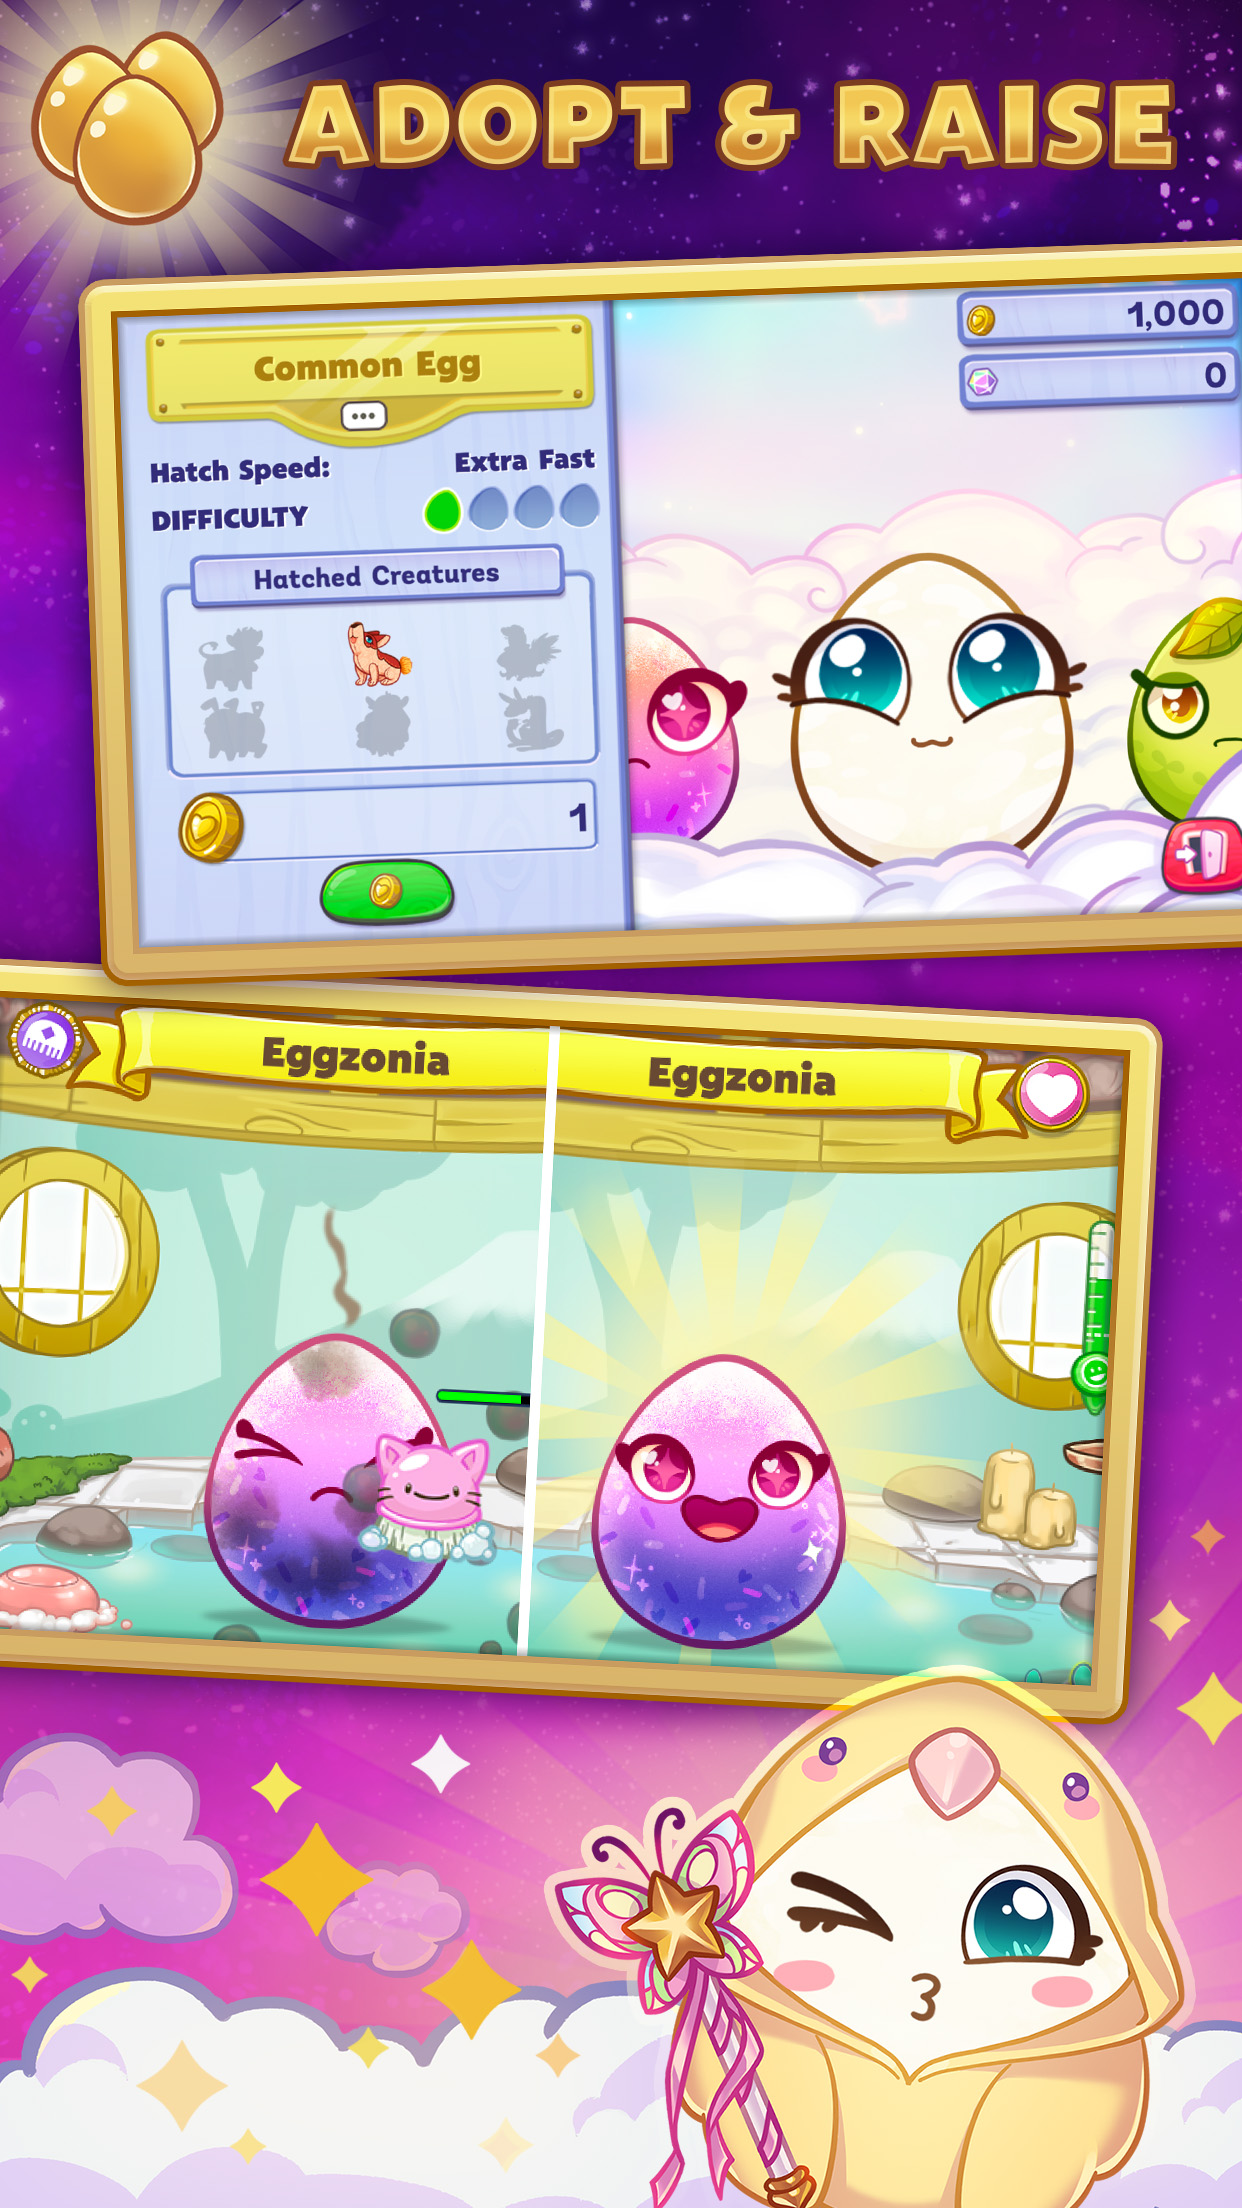 Egg! The Pet Game - Adopt and Raise